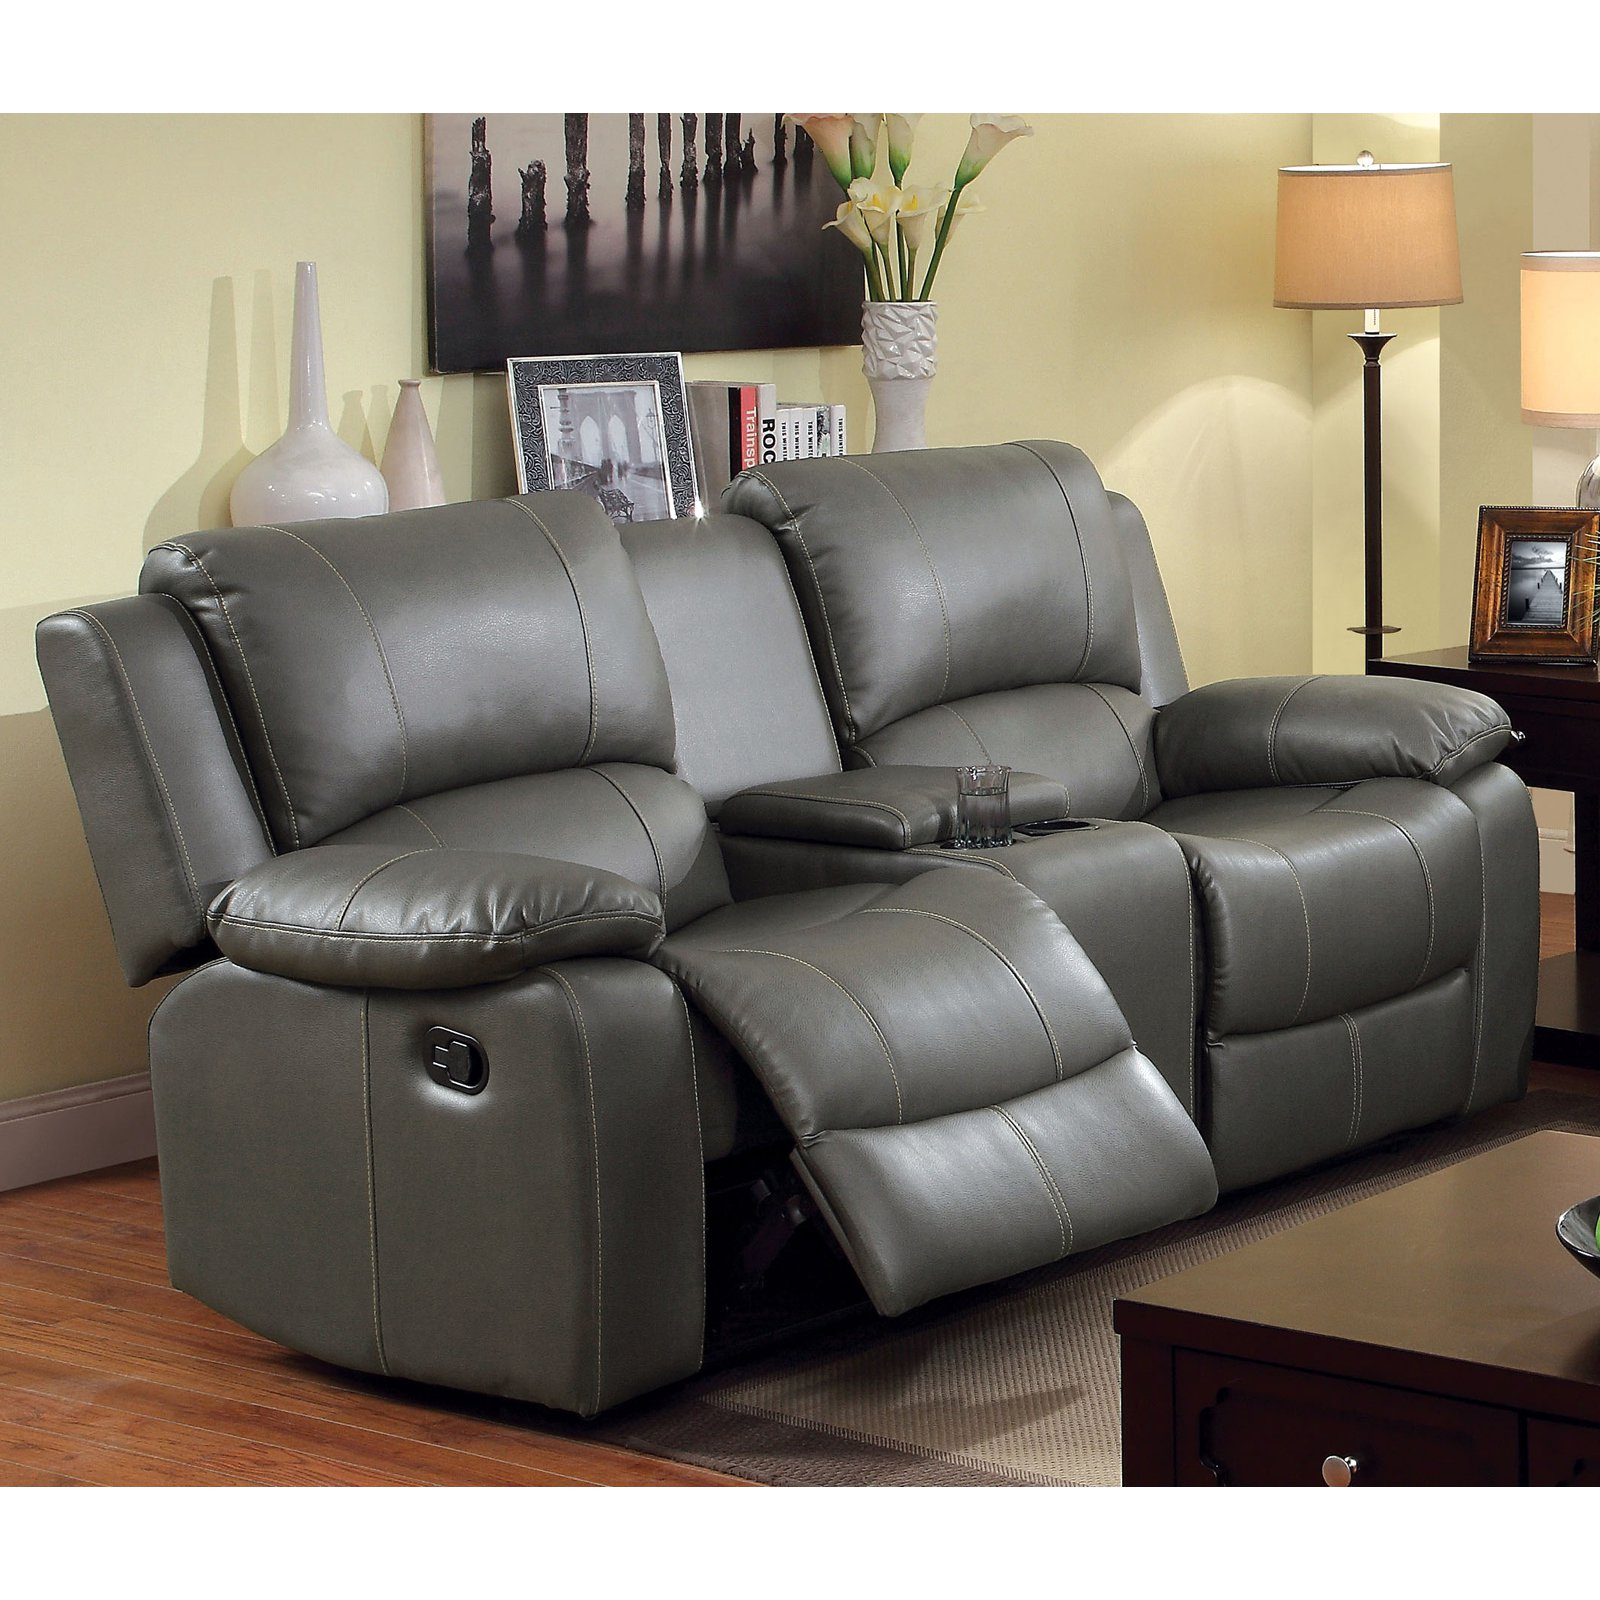 Furniture of America Rathbone Recliner Loveseat with Center Console